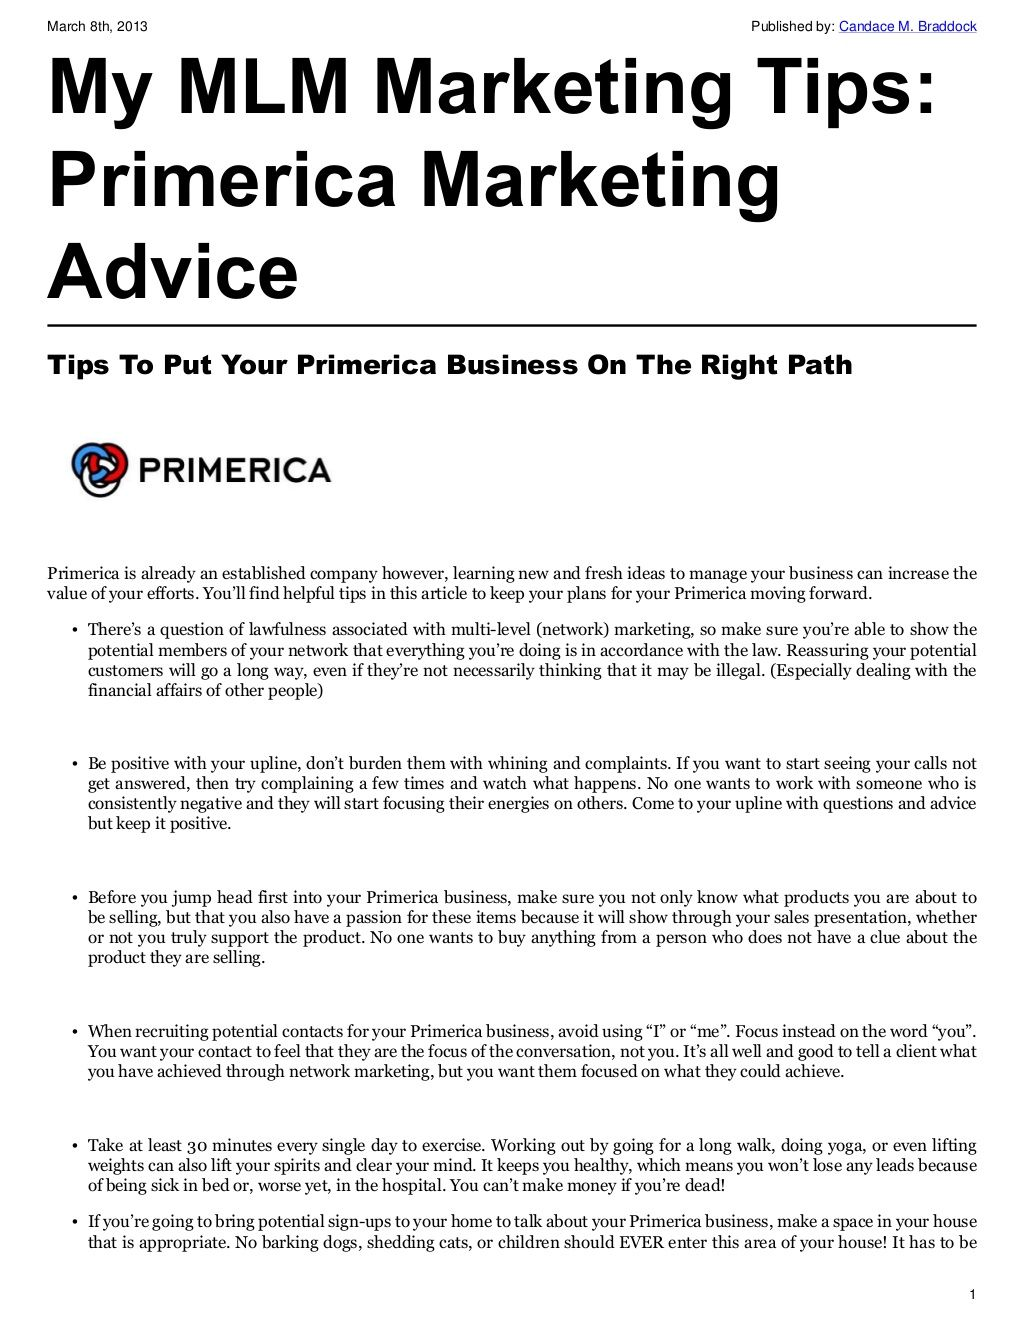 Tips To Put Your Primerica Business On The Right Path Mlm Marketing Financial Tips Marketing Advice